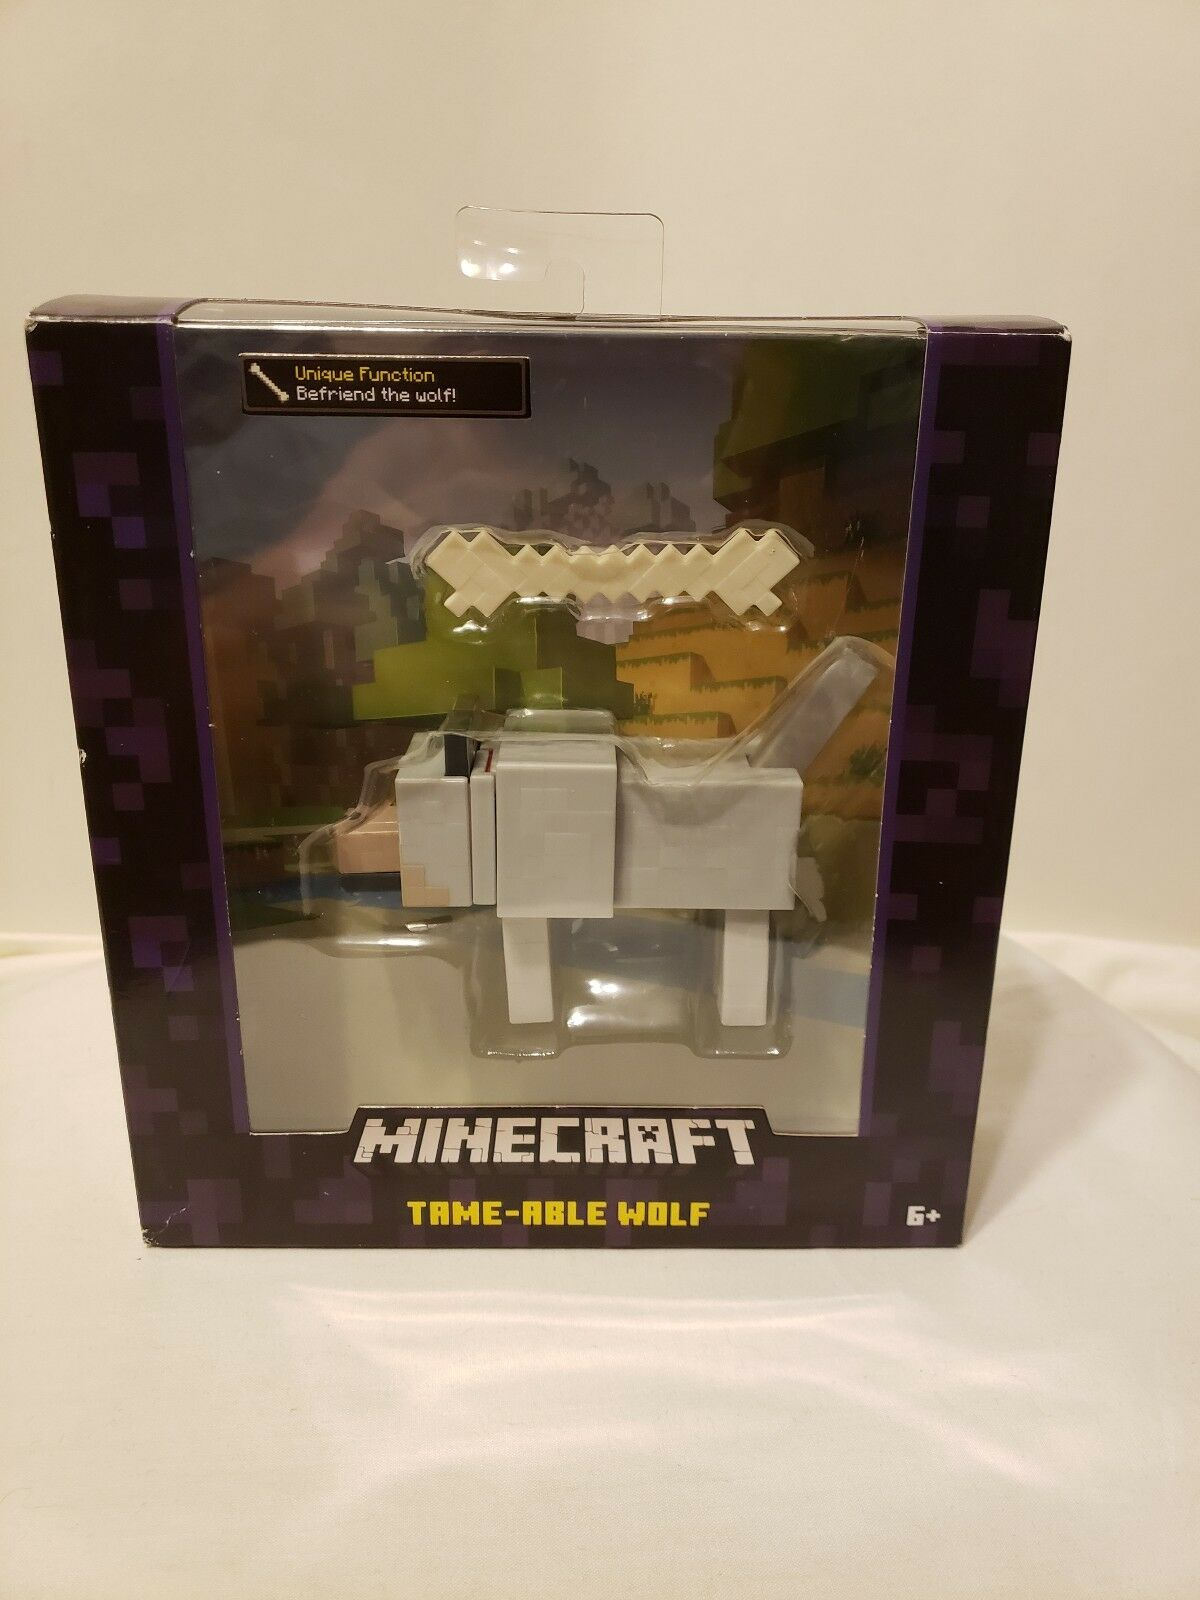 Minecraft Survival Mode Tame-Able Tame-Able Tame-Able Wolf NEW FACTORY SEALED Free Ship Video Game 4f449f